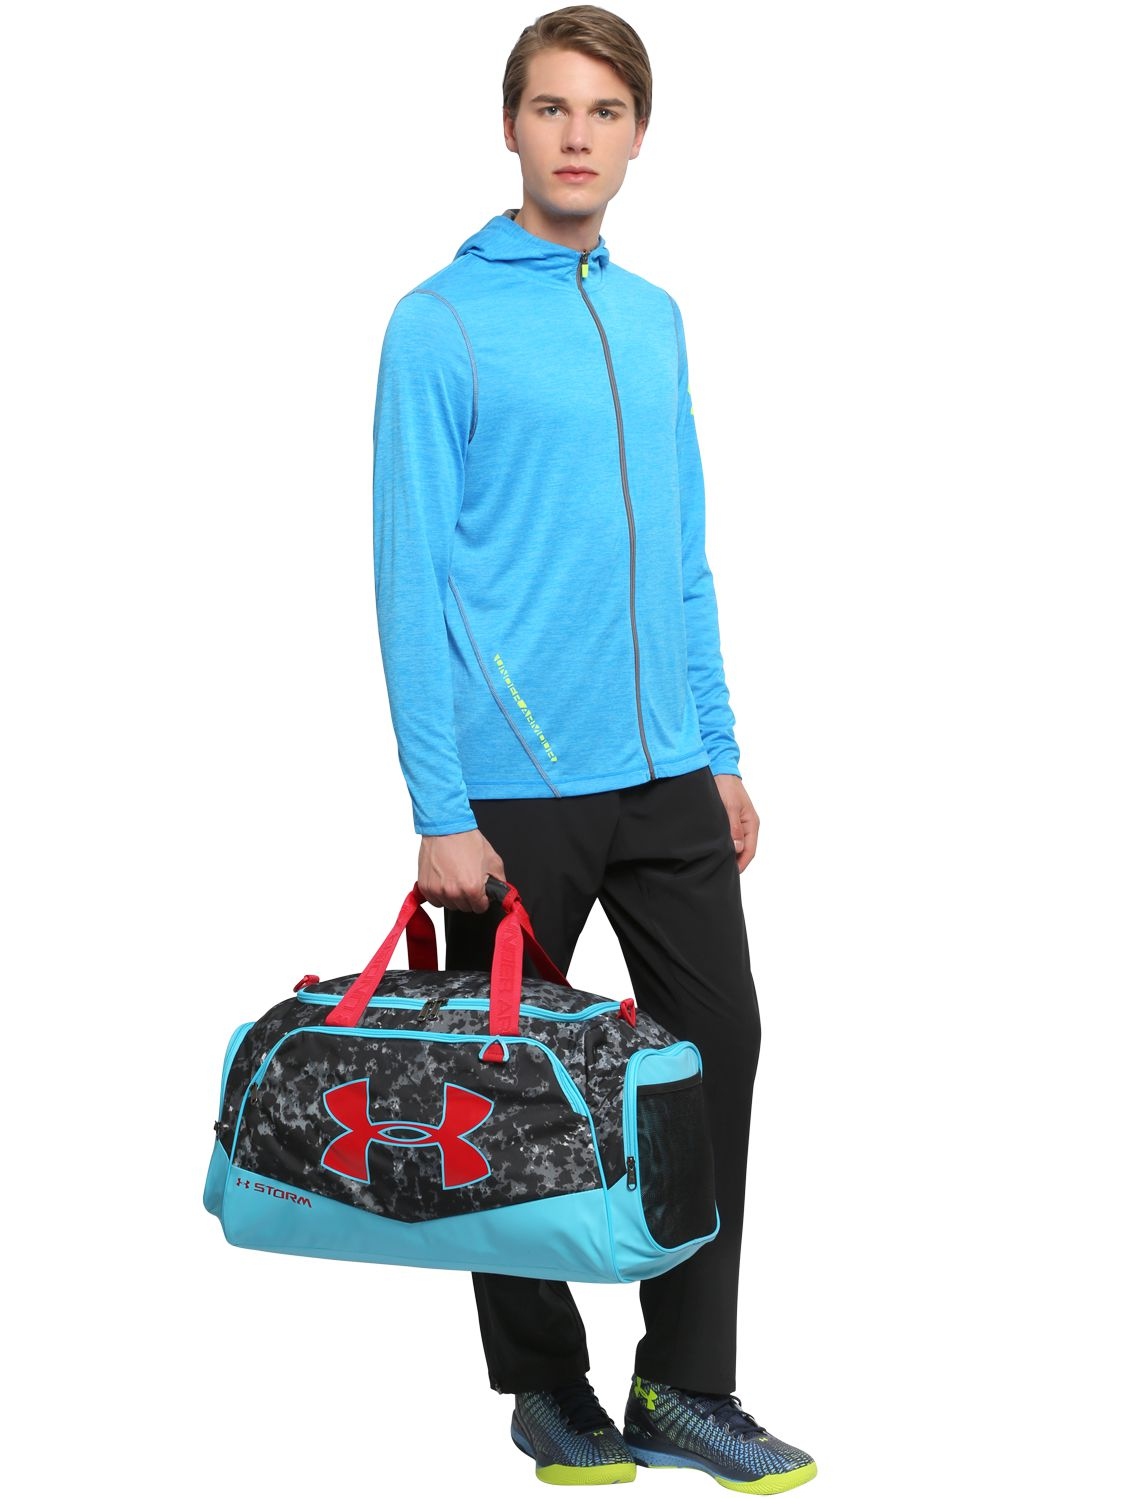 ee60c60d05d5 Under Armour Undeniable Medium Duffel Sports Bag